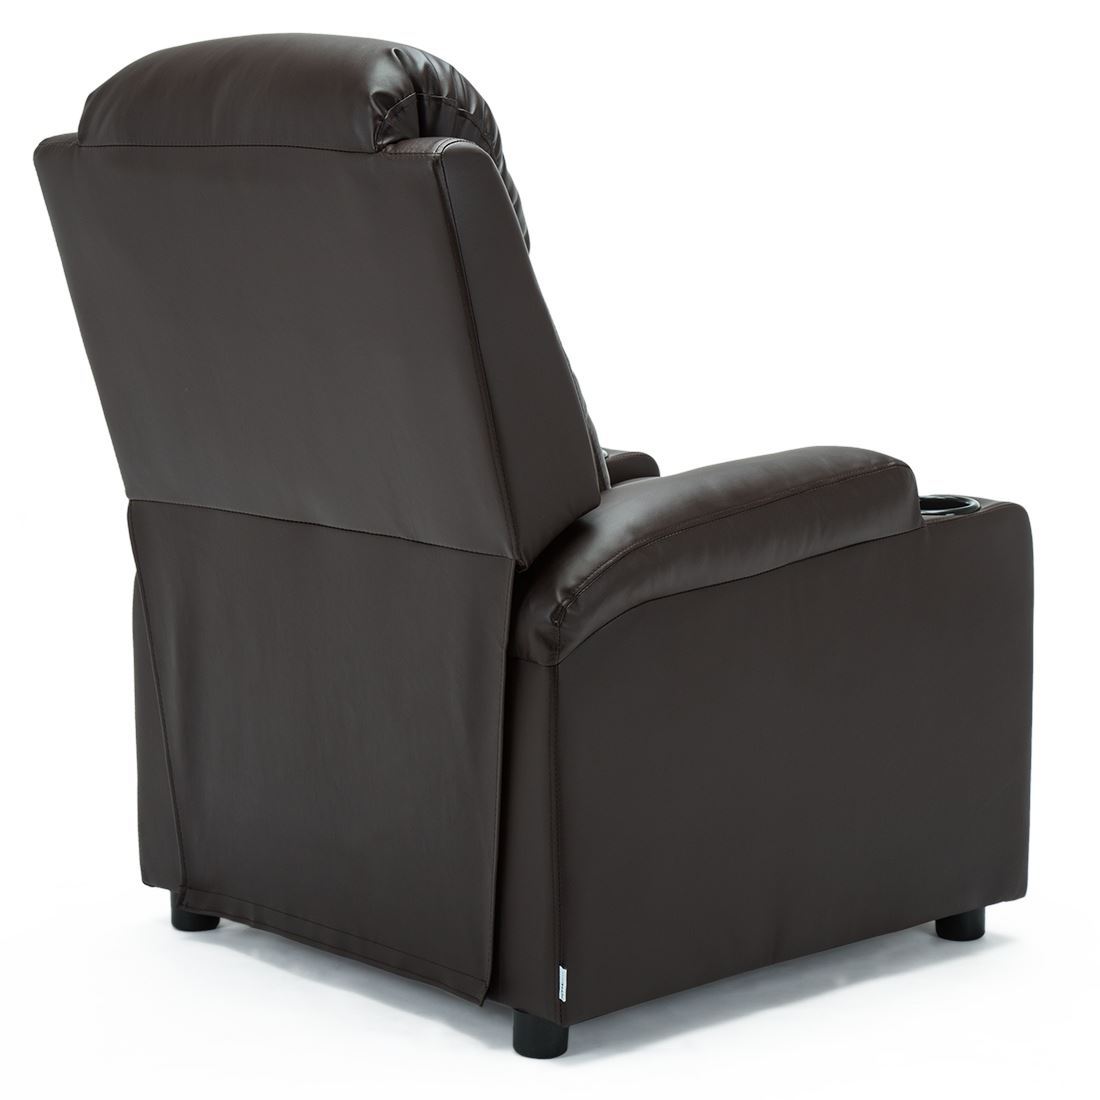 STUDIO-LEATHER-RECLINER-w-DRINK-HOLDERS-ARMCHAIR-SOFA-CHAIR-CINEMA-GAMING thumbnail 16